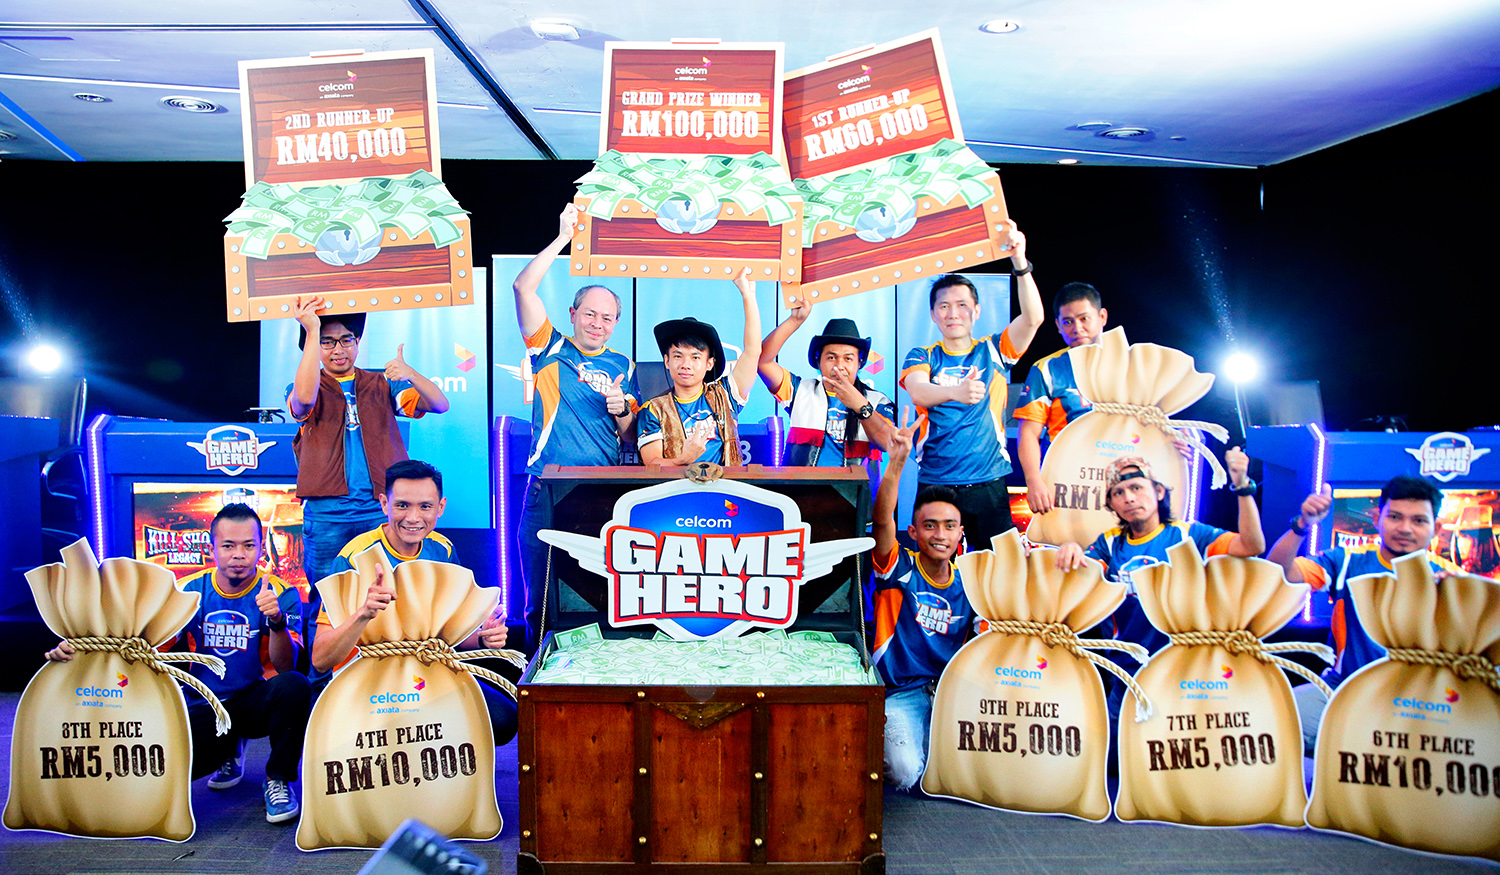 Celcom Game Hero Tournament - Kill Shot Legacy Winners